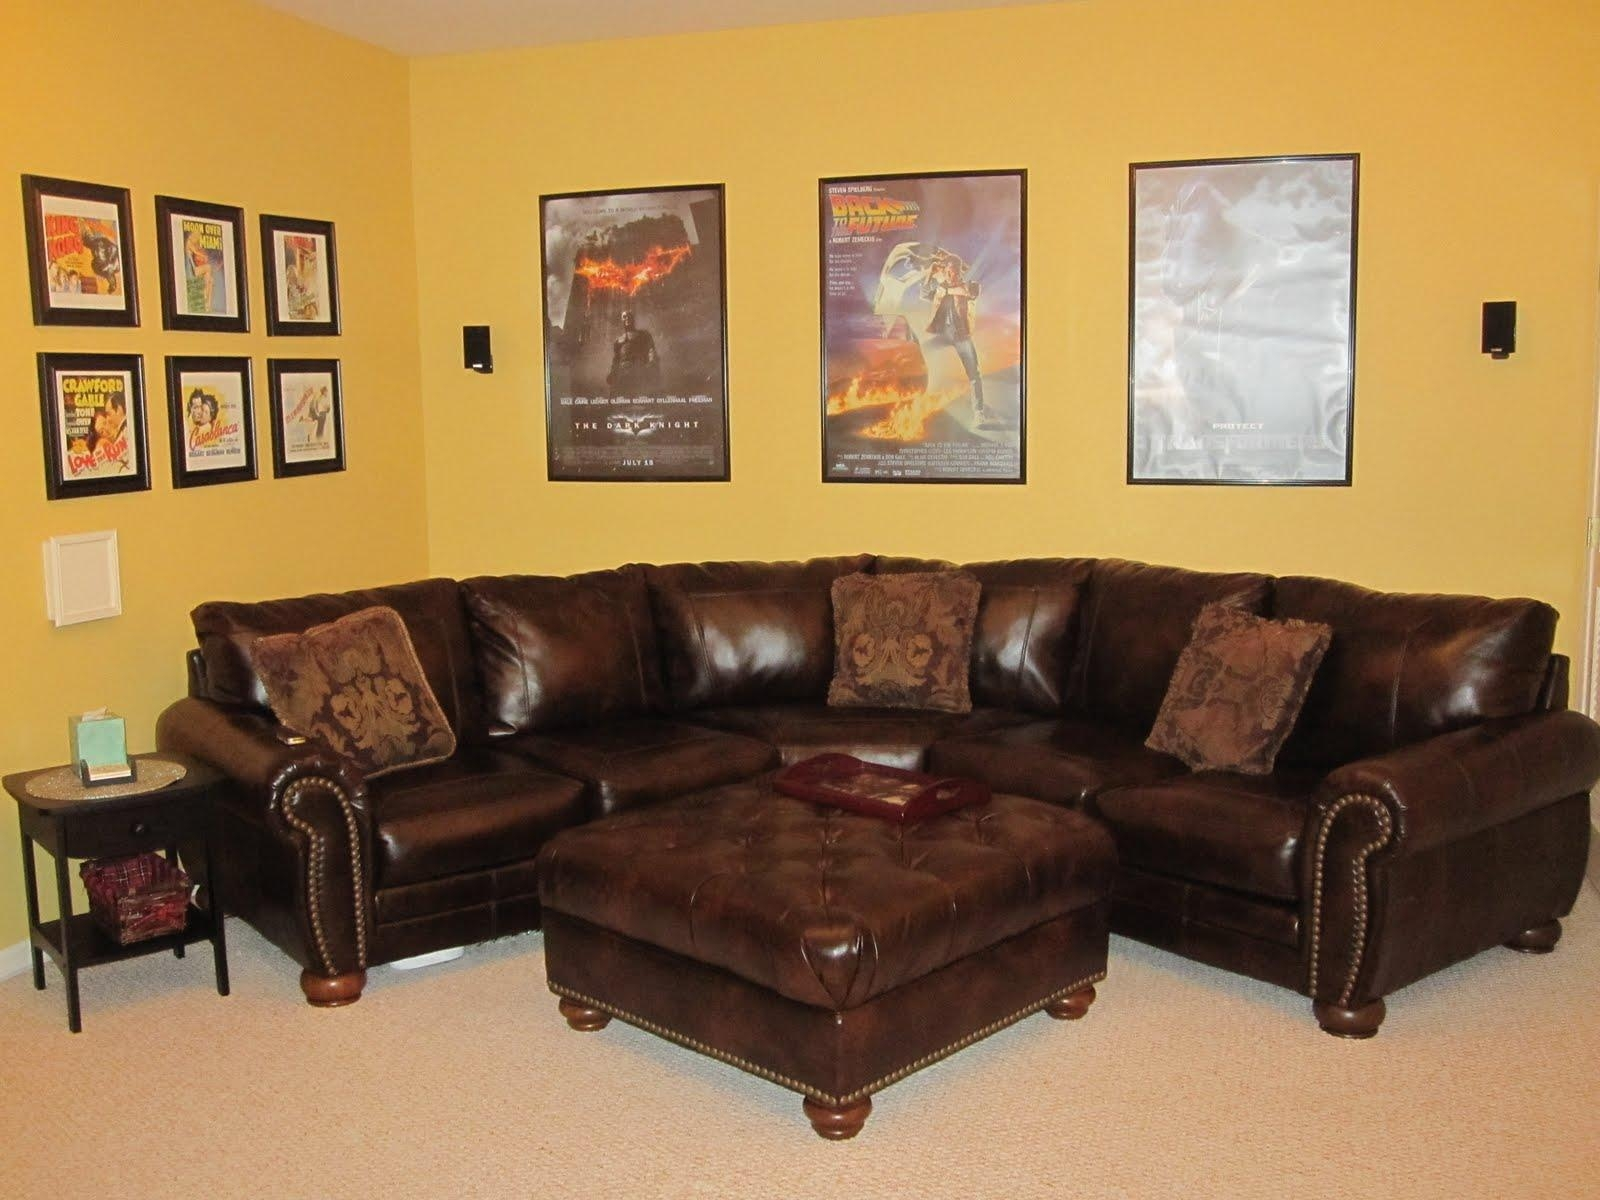 Decor: Fabulous Home Furniture Decor With Classy Thomasville Intended For Thomasville Leather Sectionals (View 8 of 20)